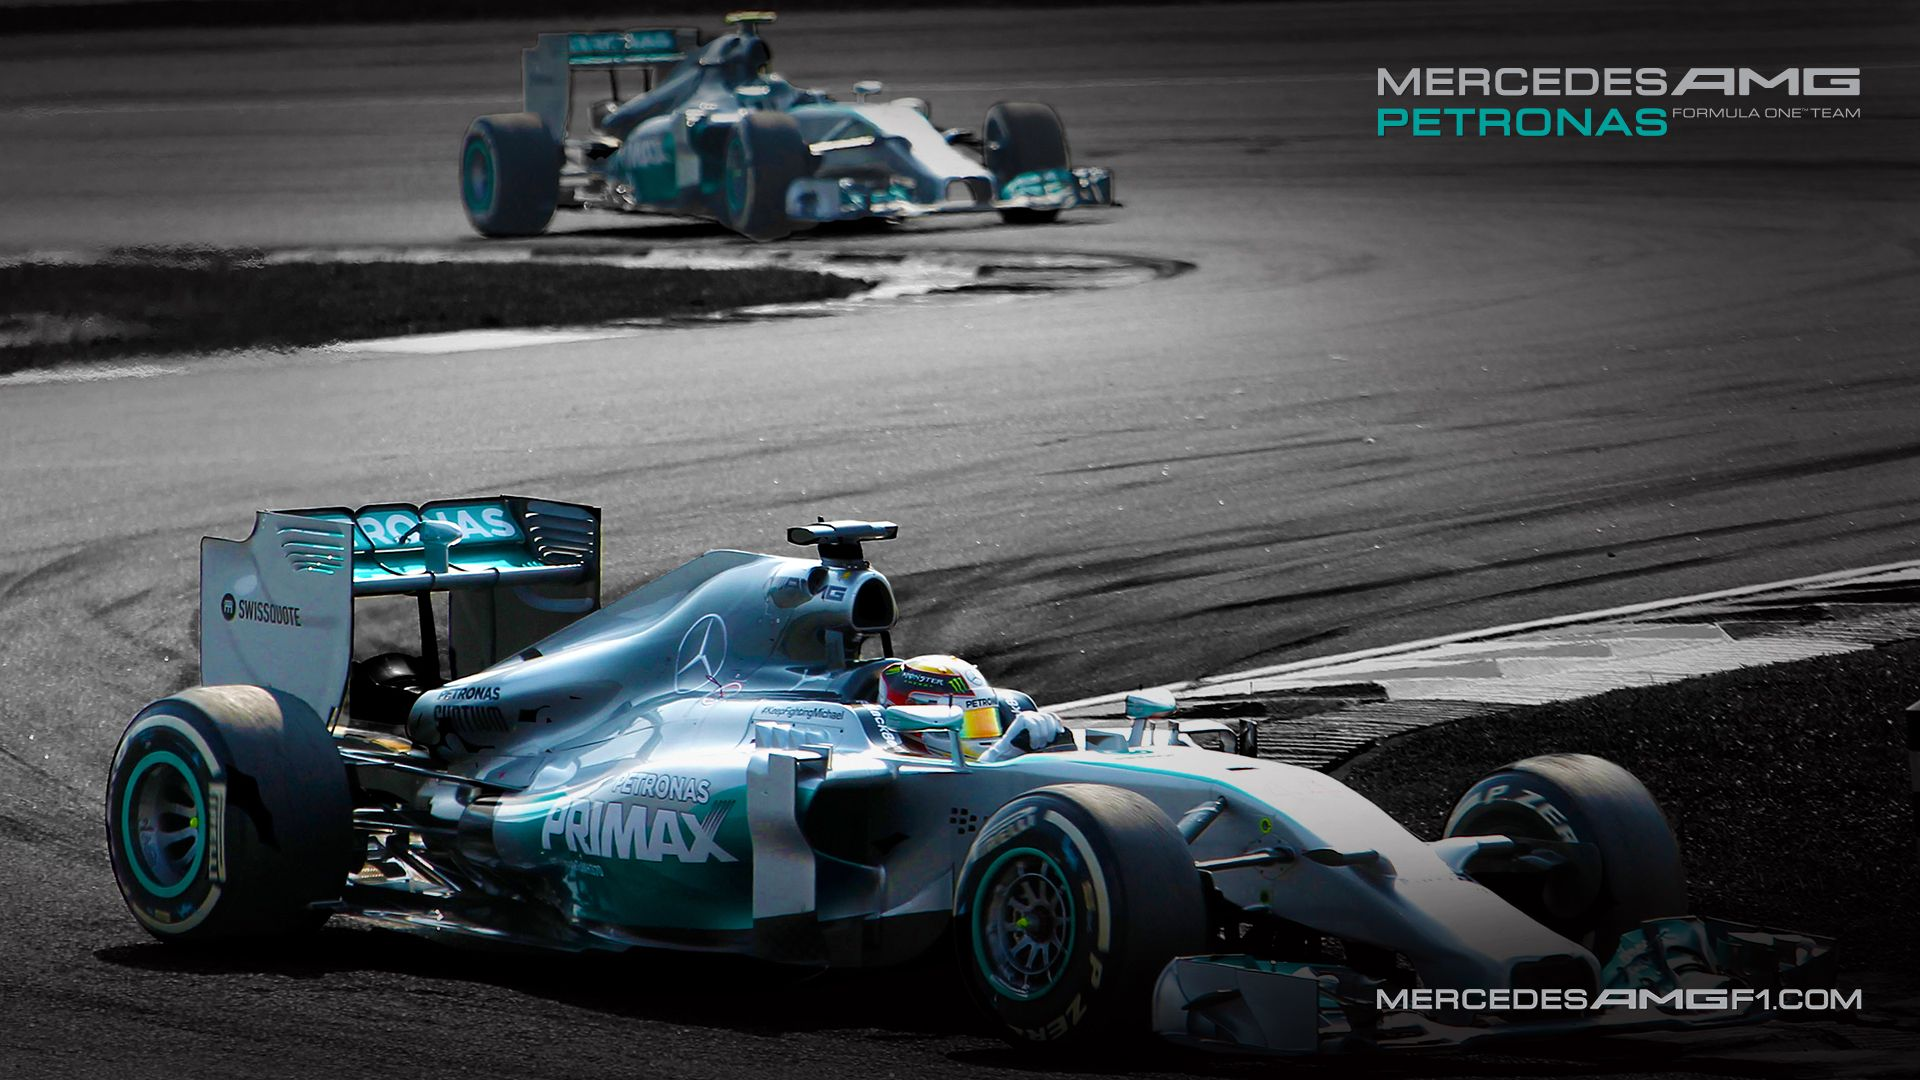 formula one mercedes amg petronas moving desktop wallpaper - walls